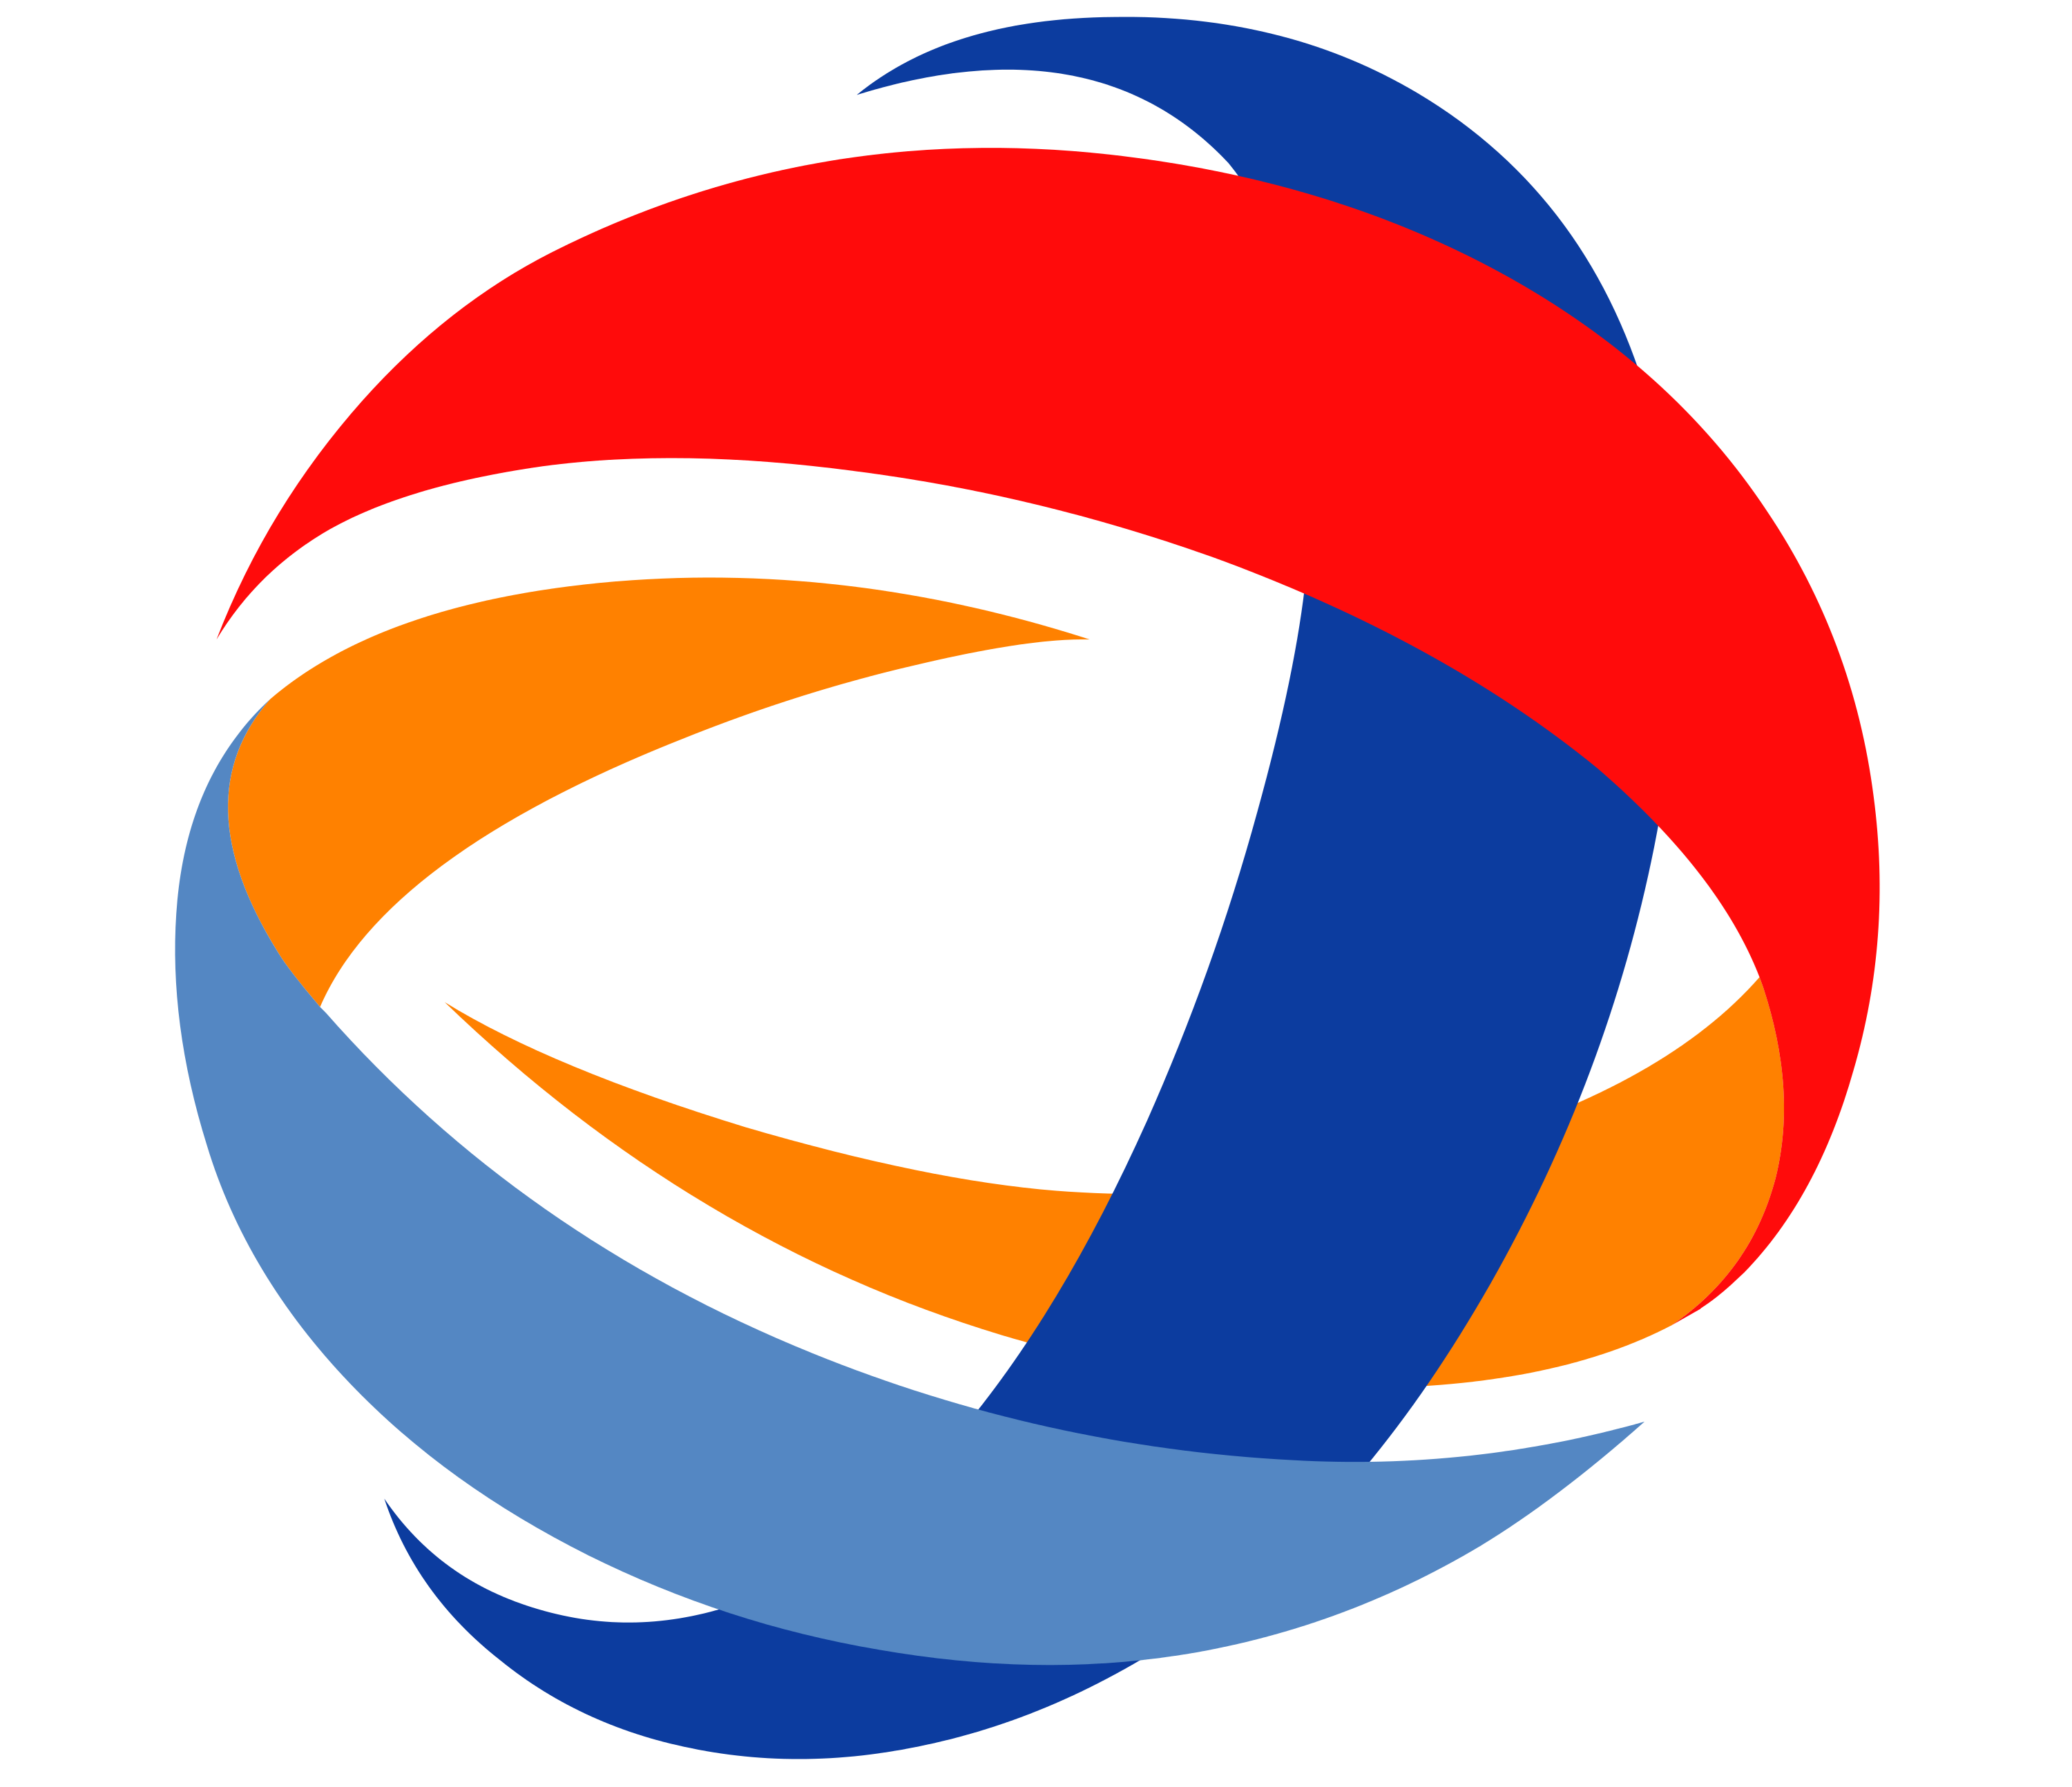 Logo computer networking 7585 Free Transparent PNG